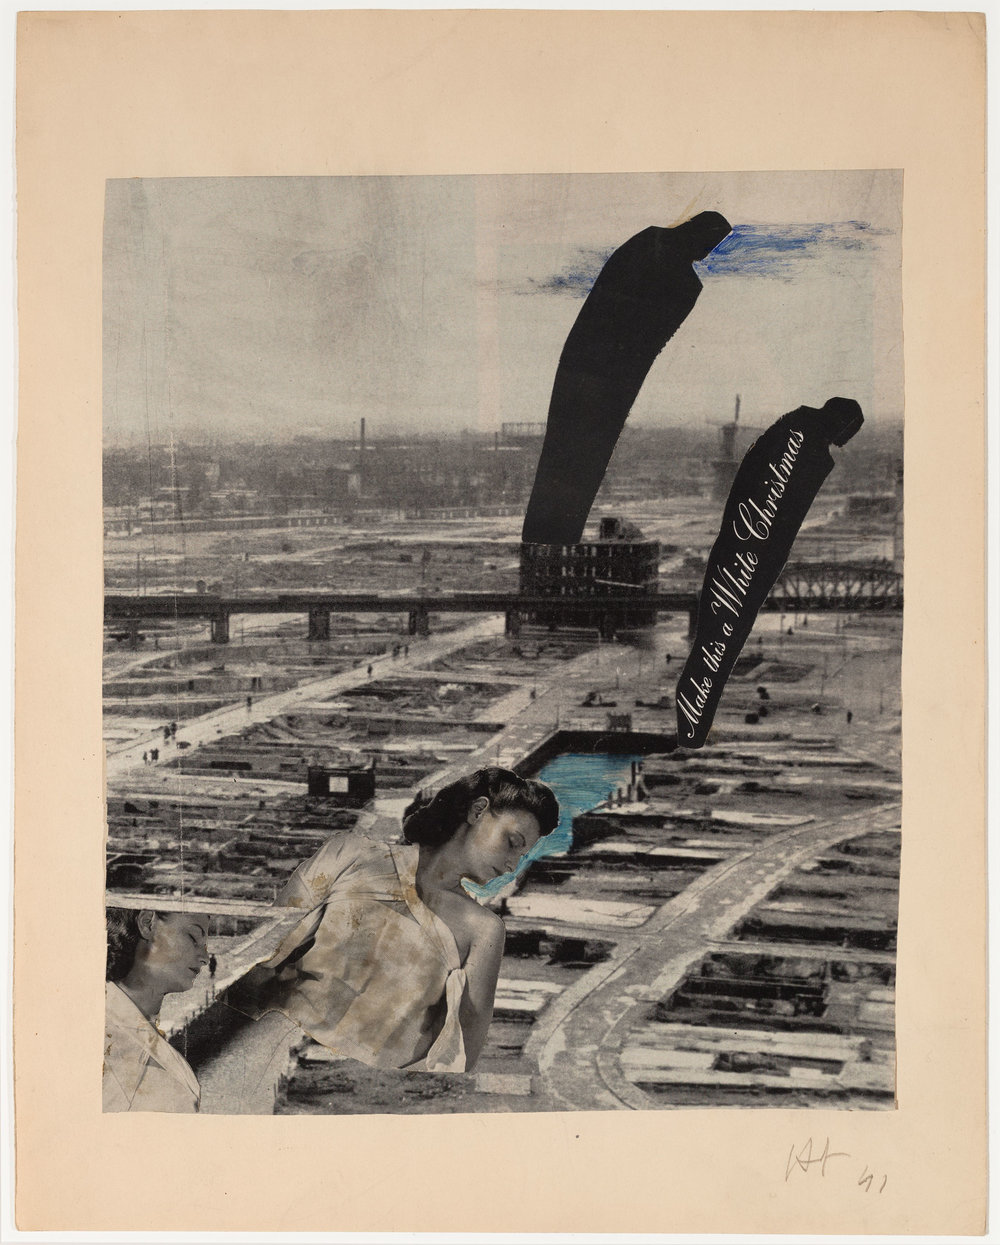 Hedda Sterne,  Untitled , 1941, Collage, 14 3/4 in. x 11 3/4 in.